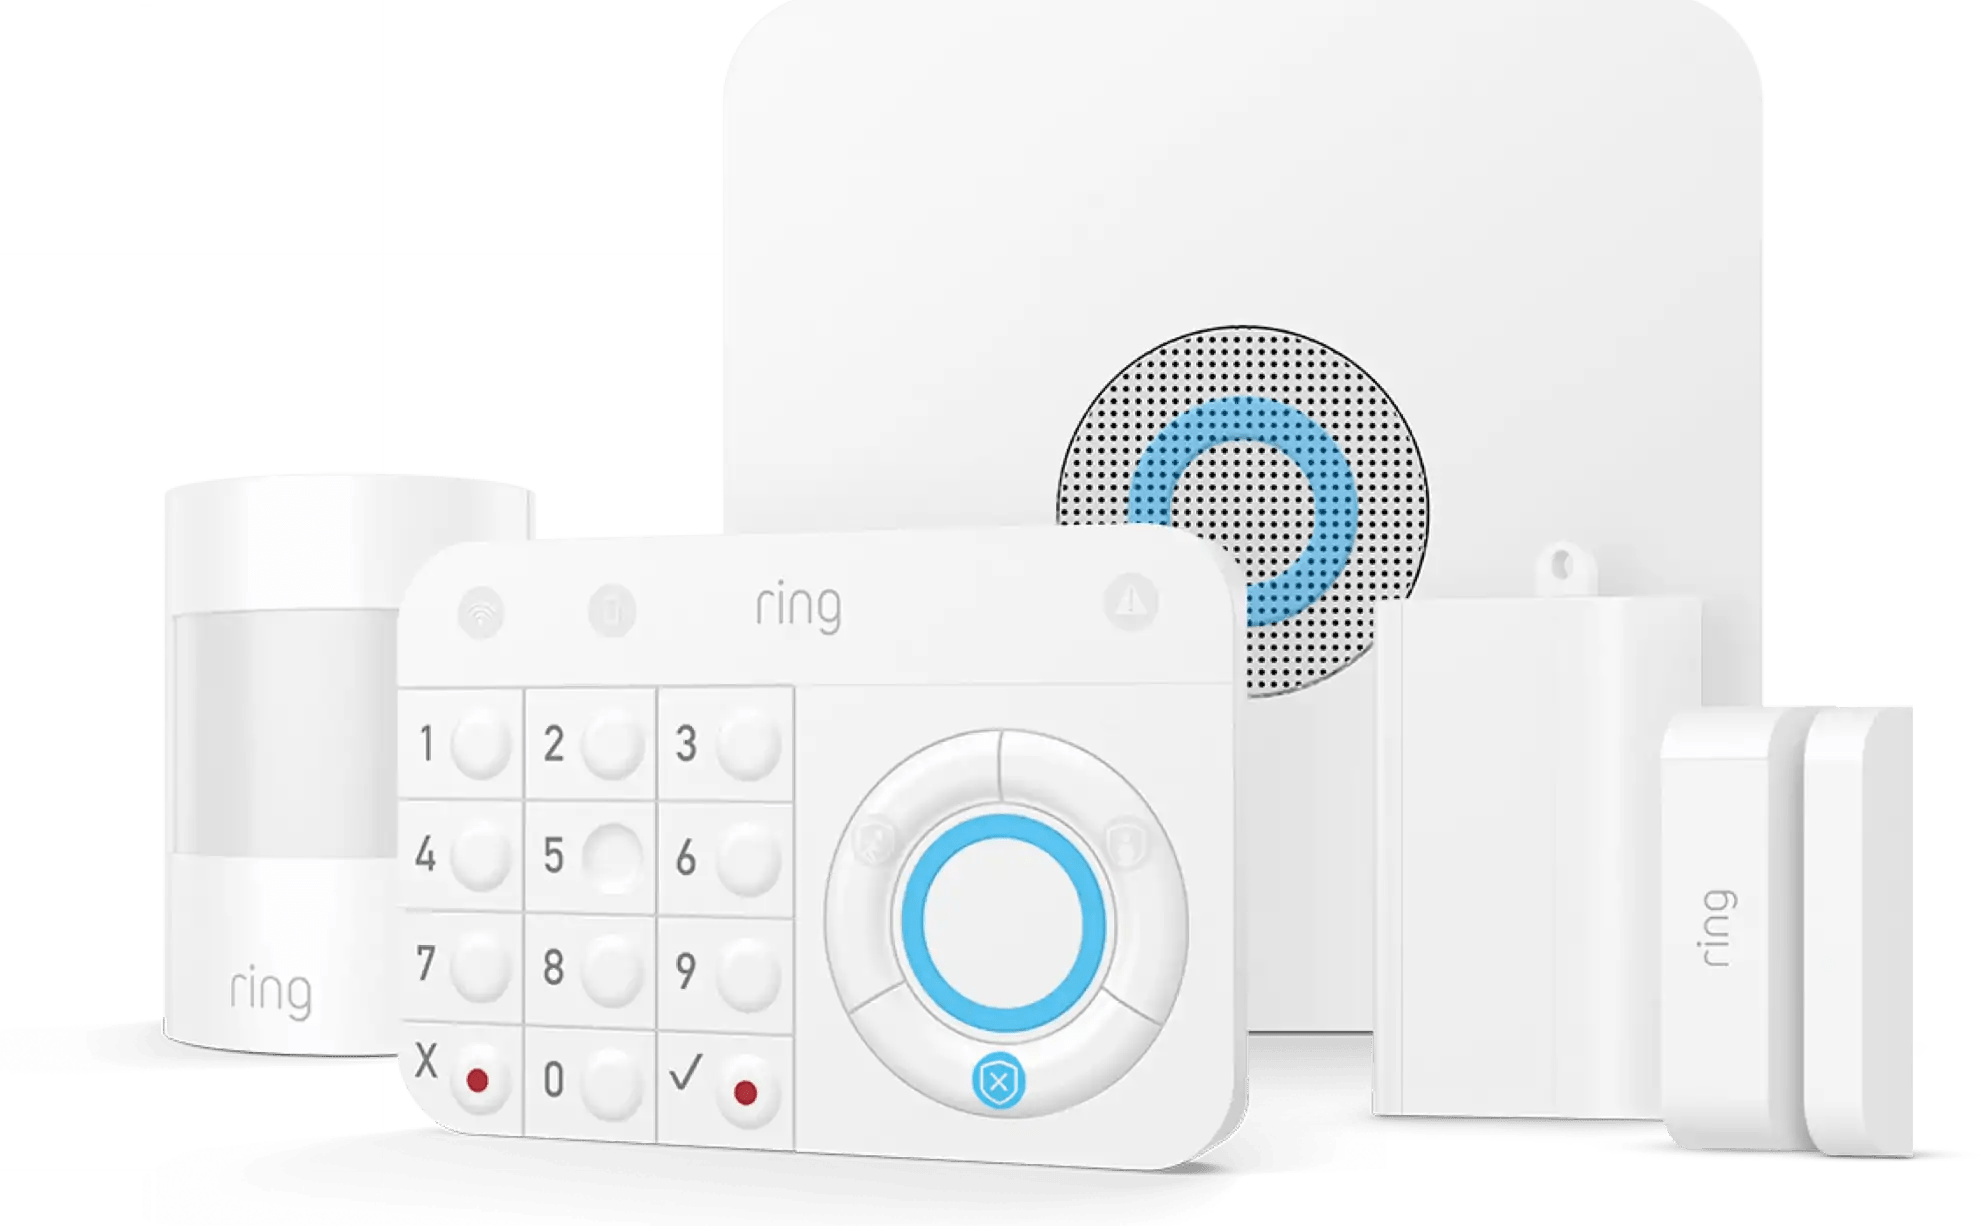 hight resolution of ring alarm system cost pricing packages ring security system more details see fire alarm wiring for more complete home security